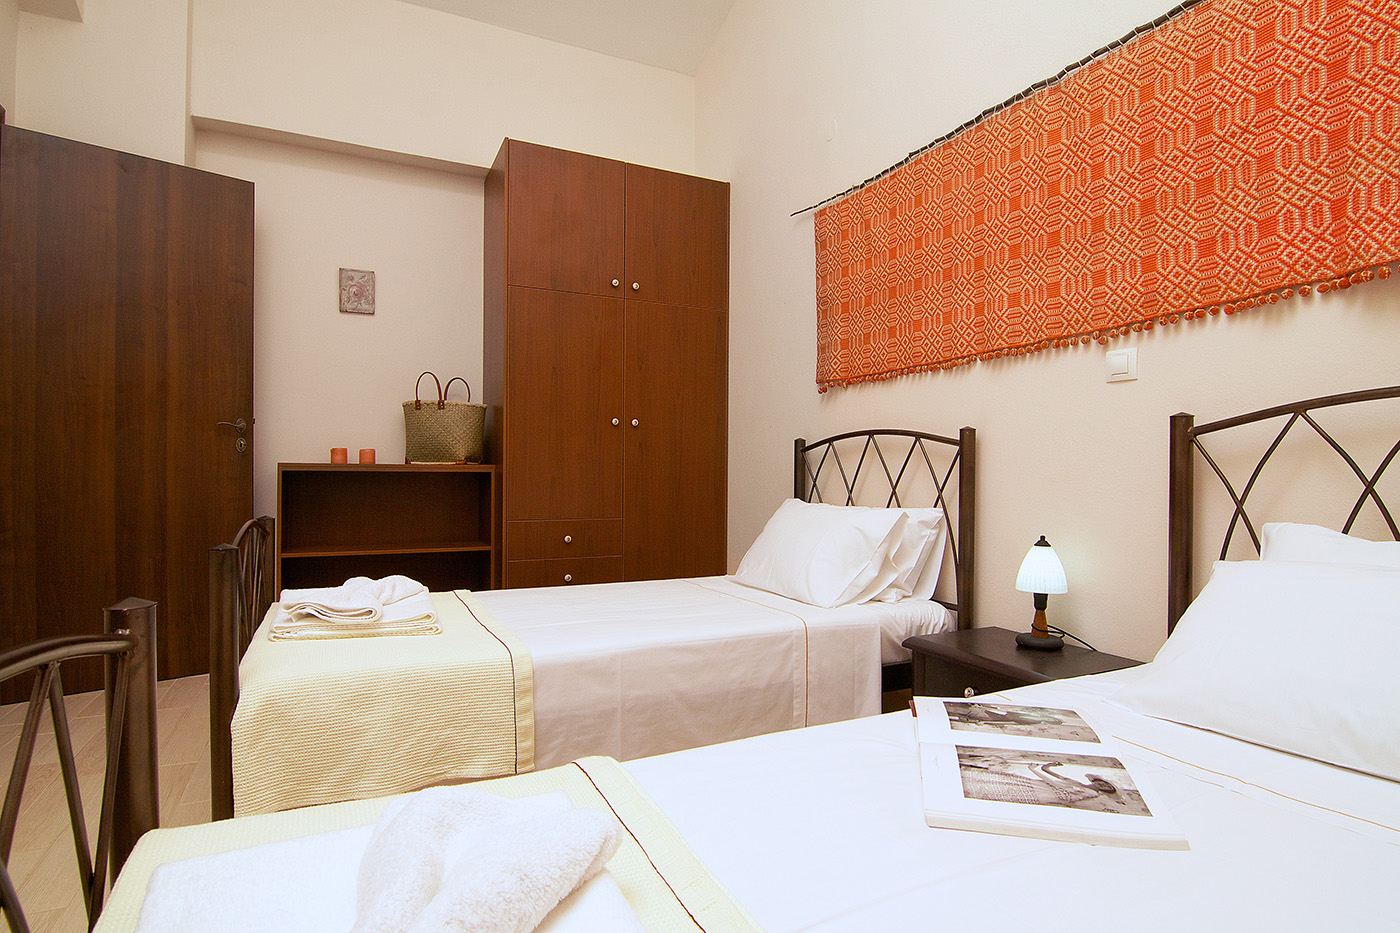 Rooms - Bedroom with 2 single beds